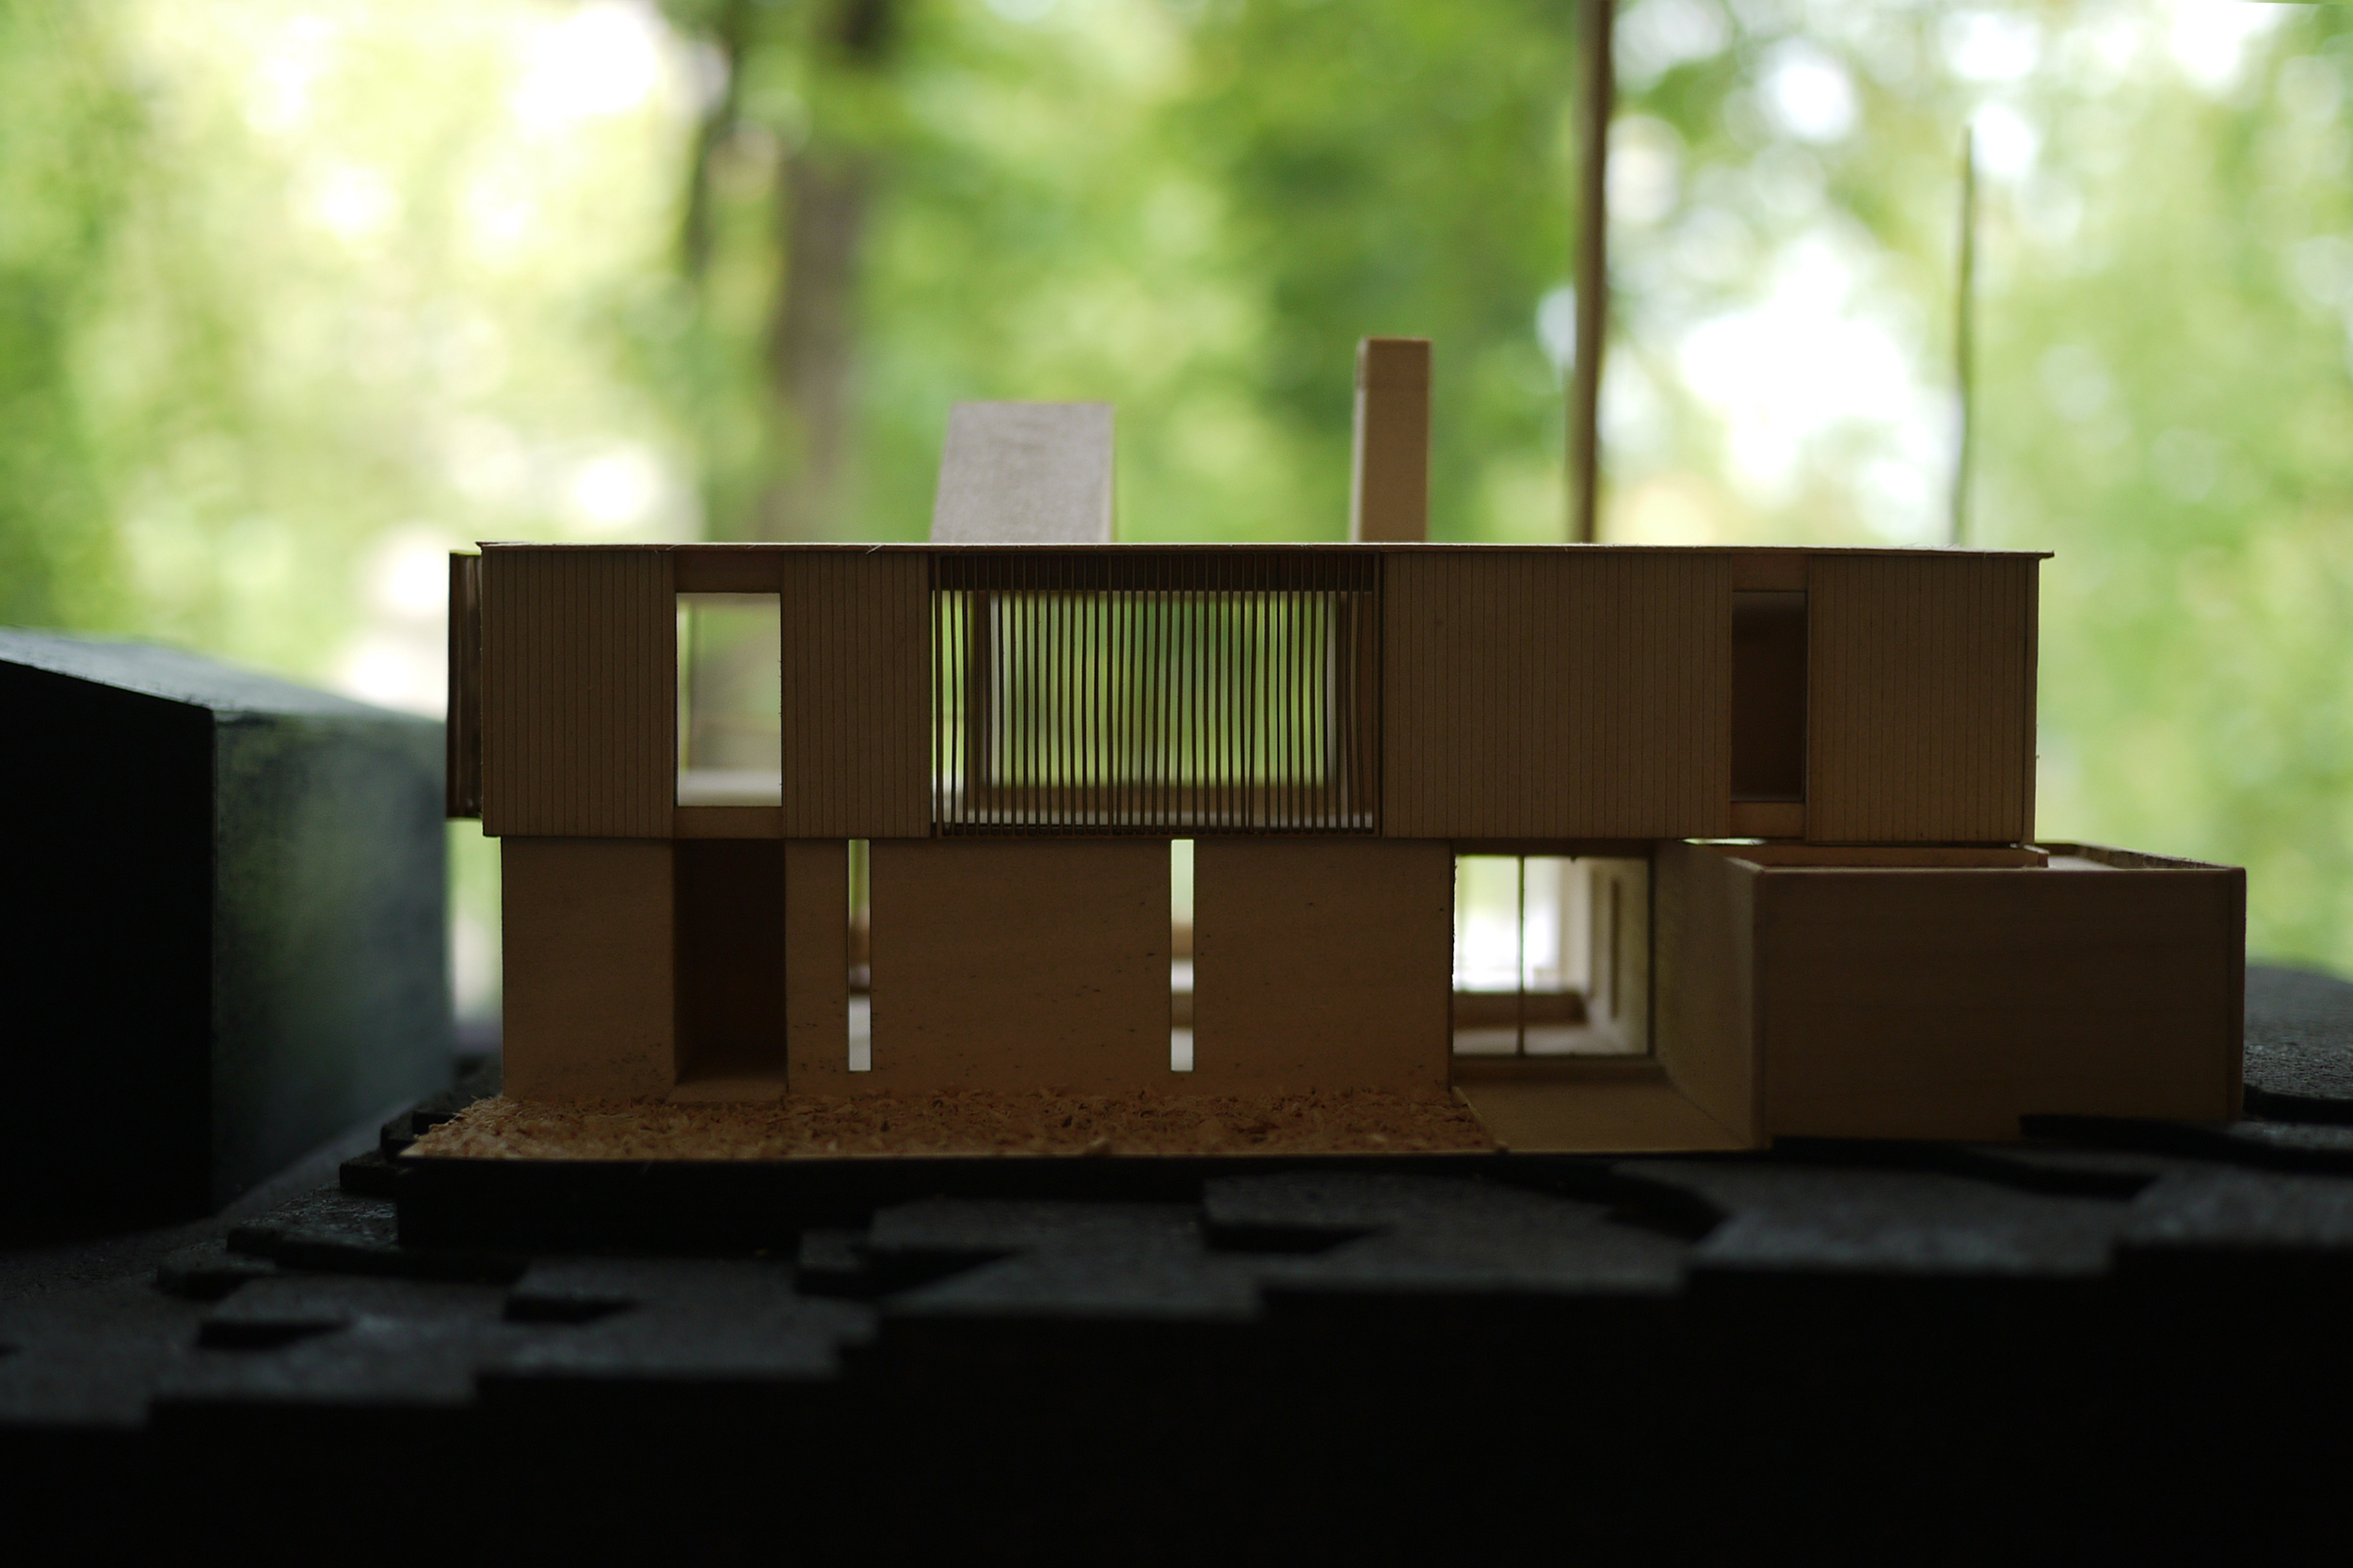 goCstudio_Sound House_model North.jpg